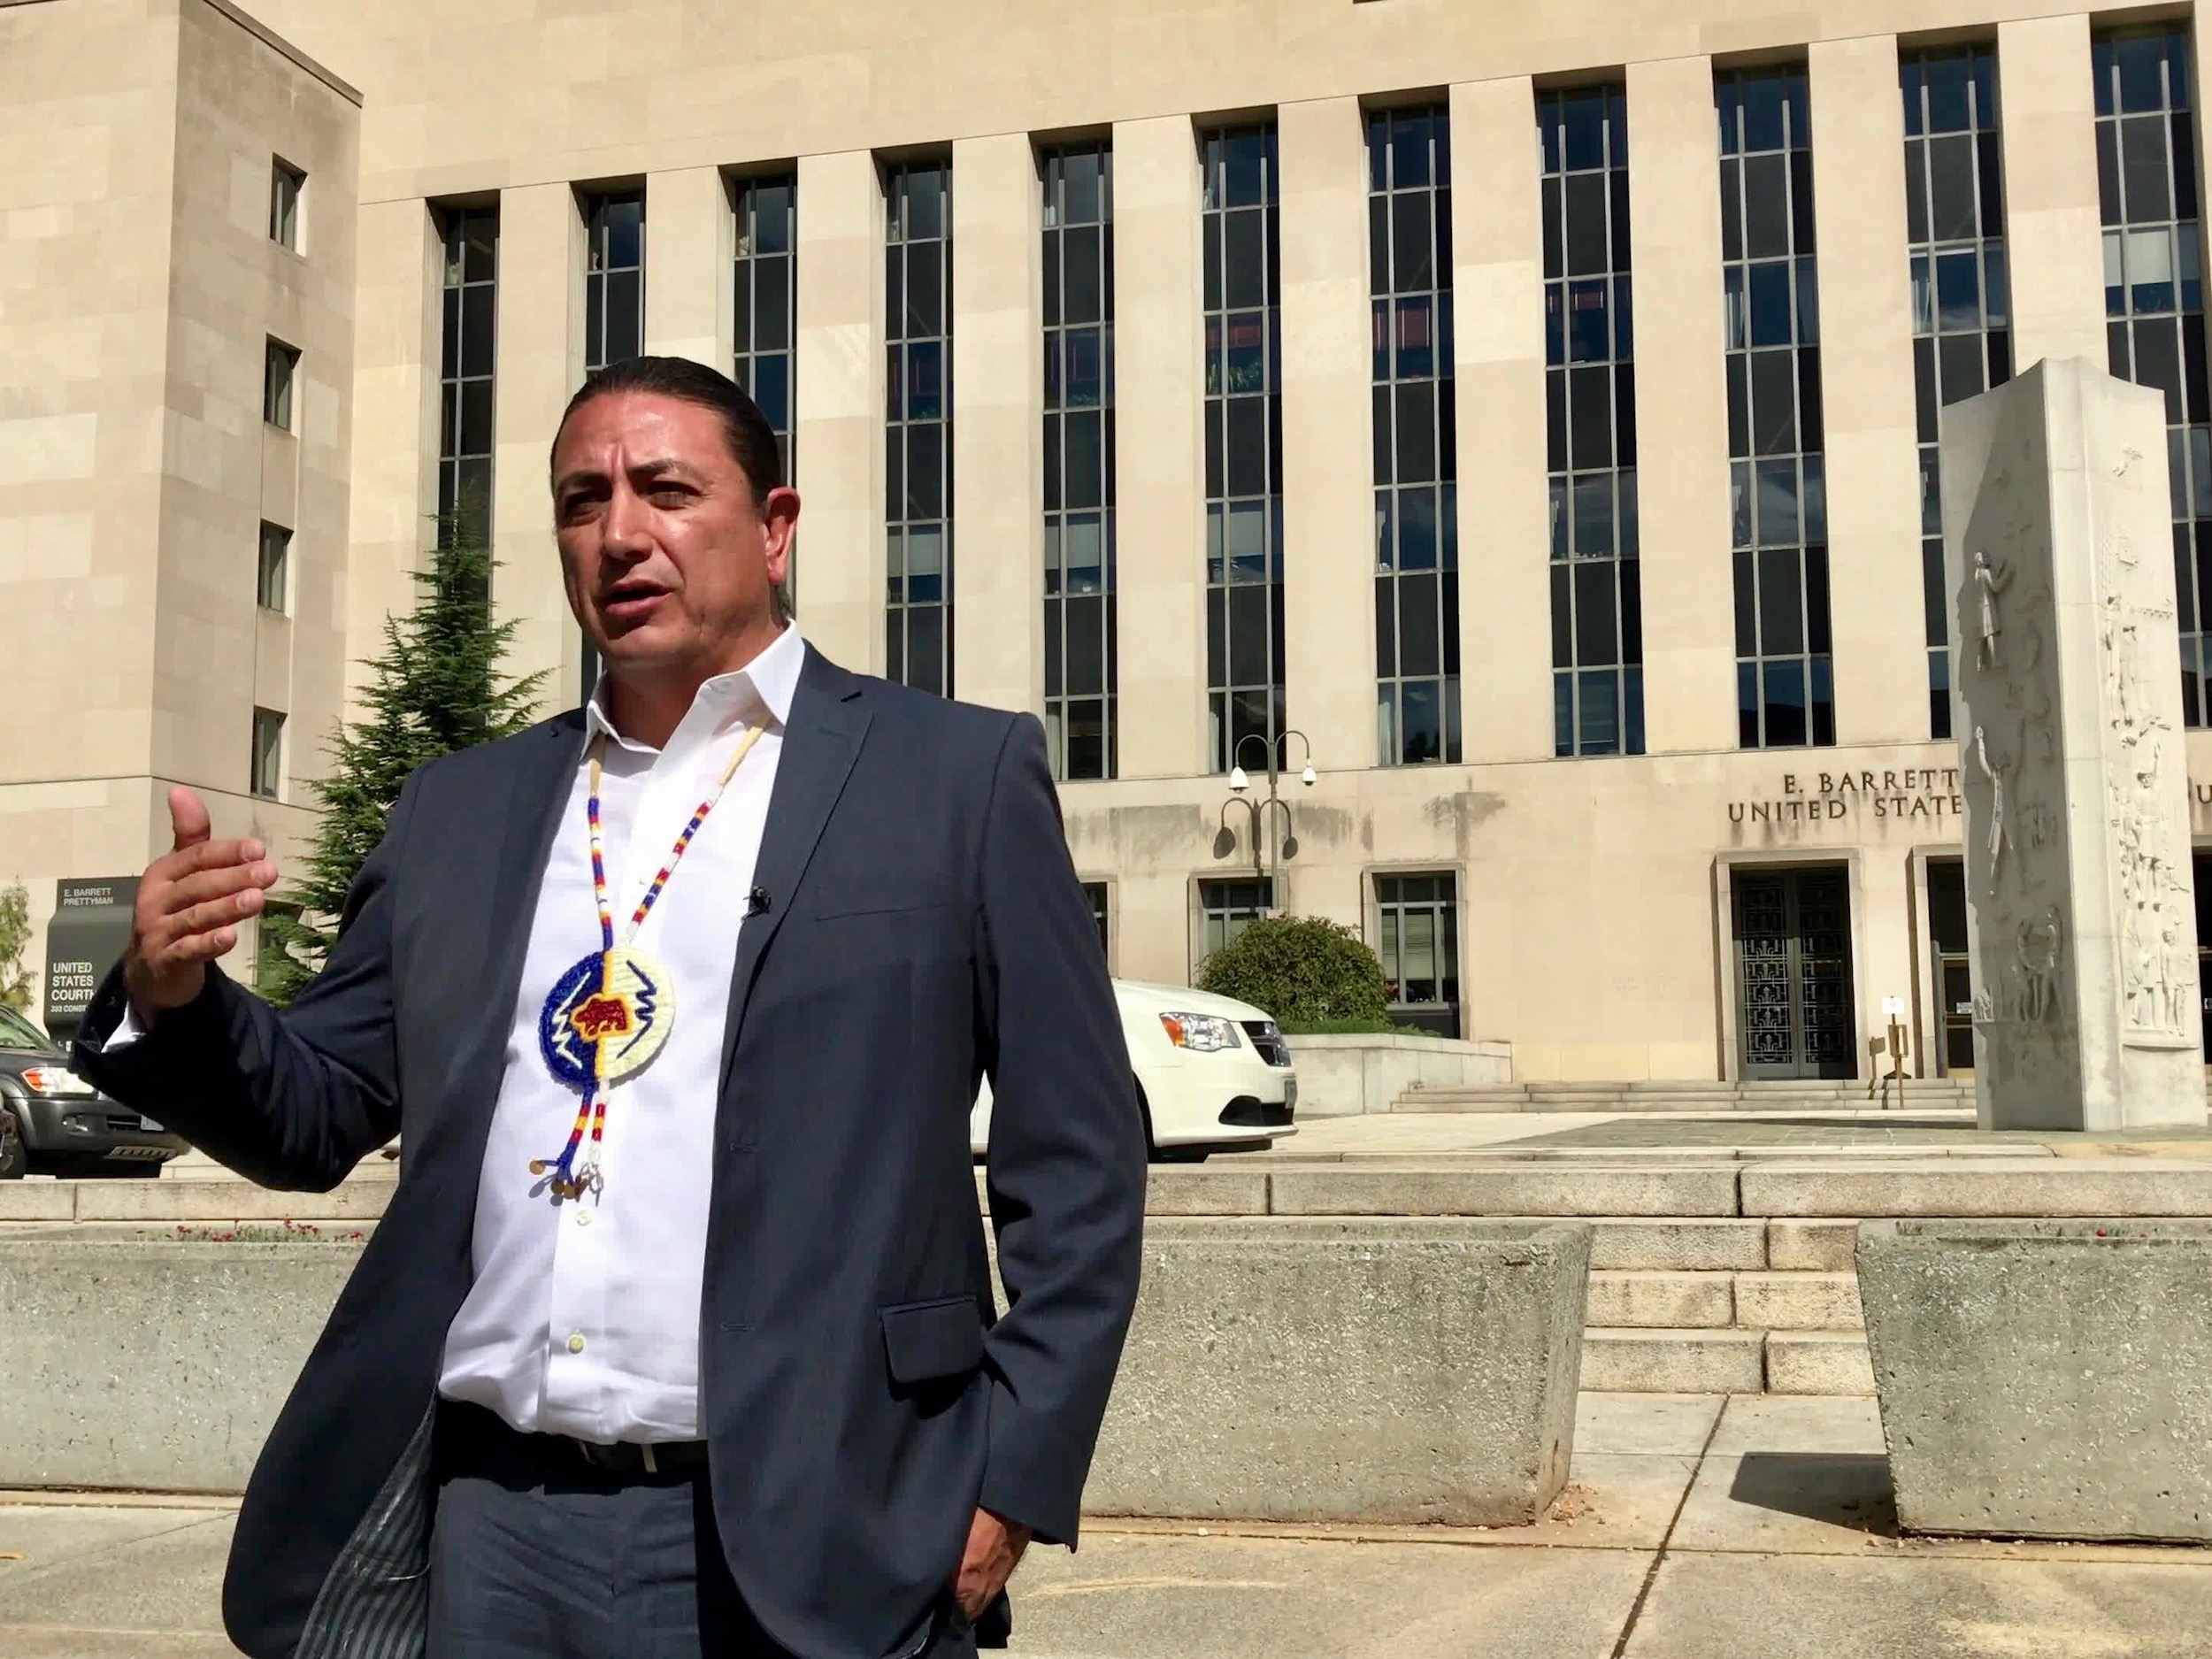 North Dakota tribal organization passes on #NoDAPL foe with endorsement